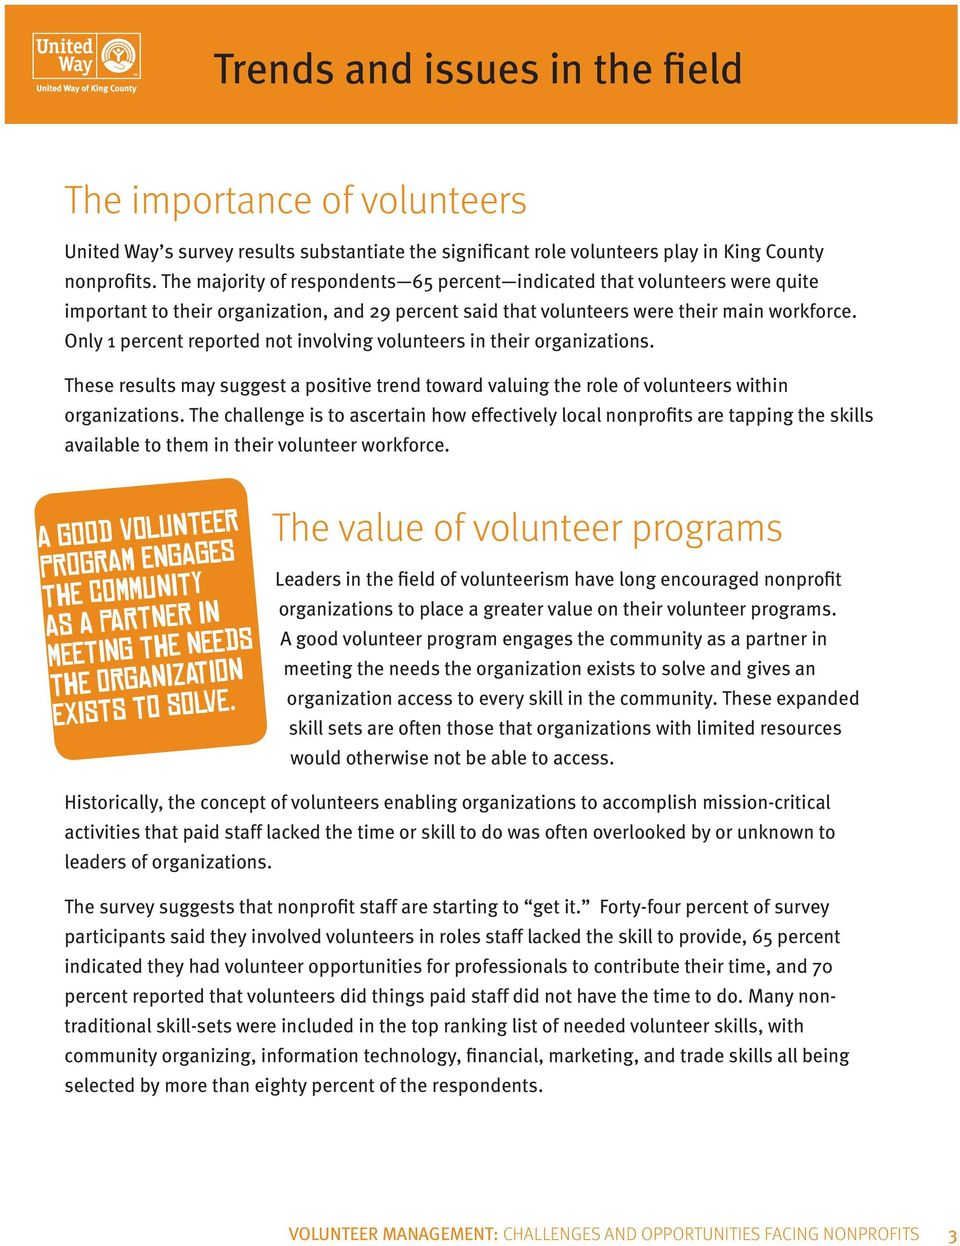 Only 1 percent reported not involving volunteers in their organizations. These results may suggest a positive trend toward valuing the role of volunteers within organizations.